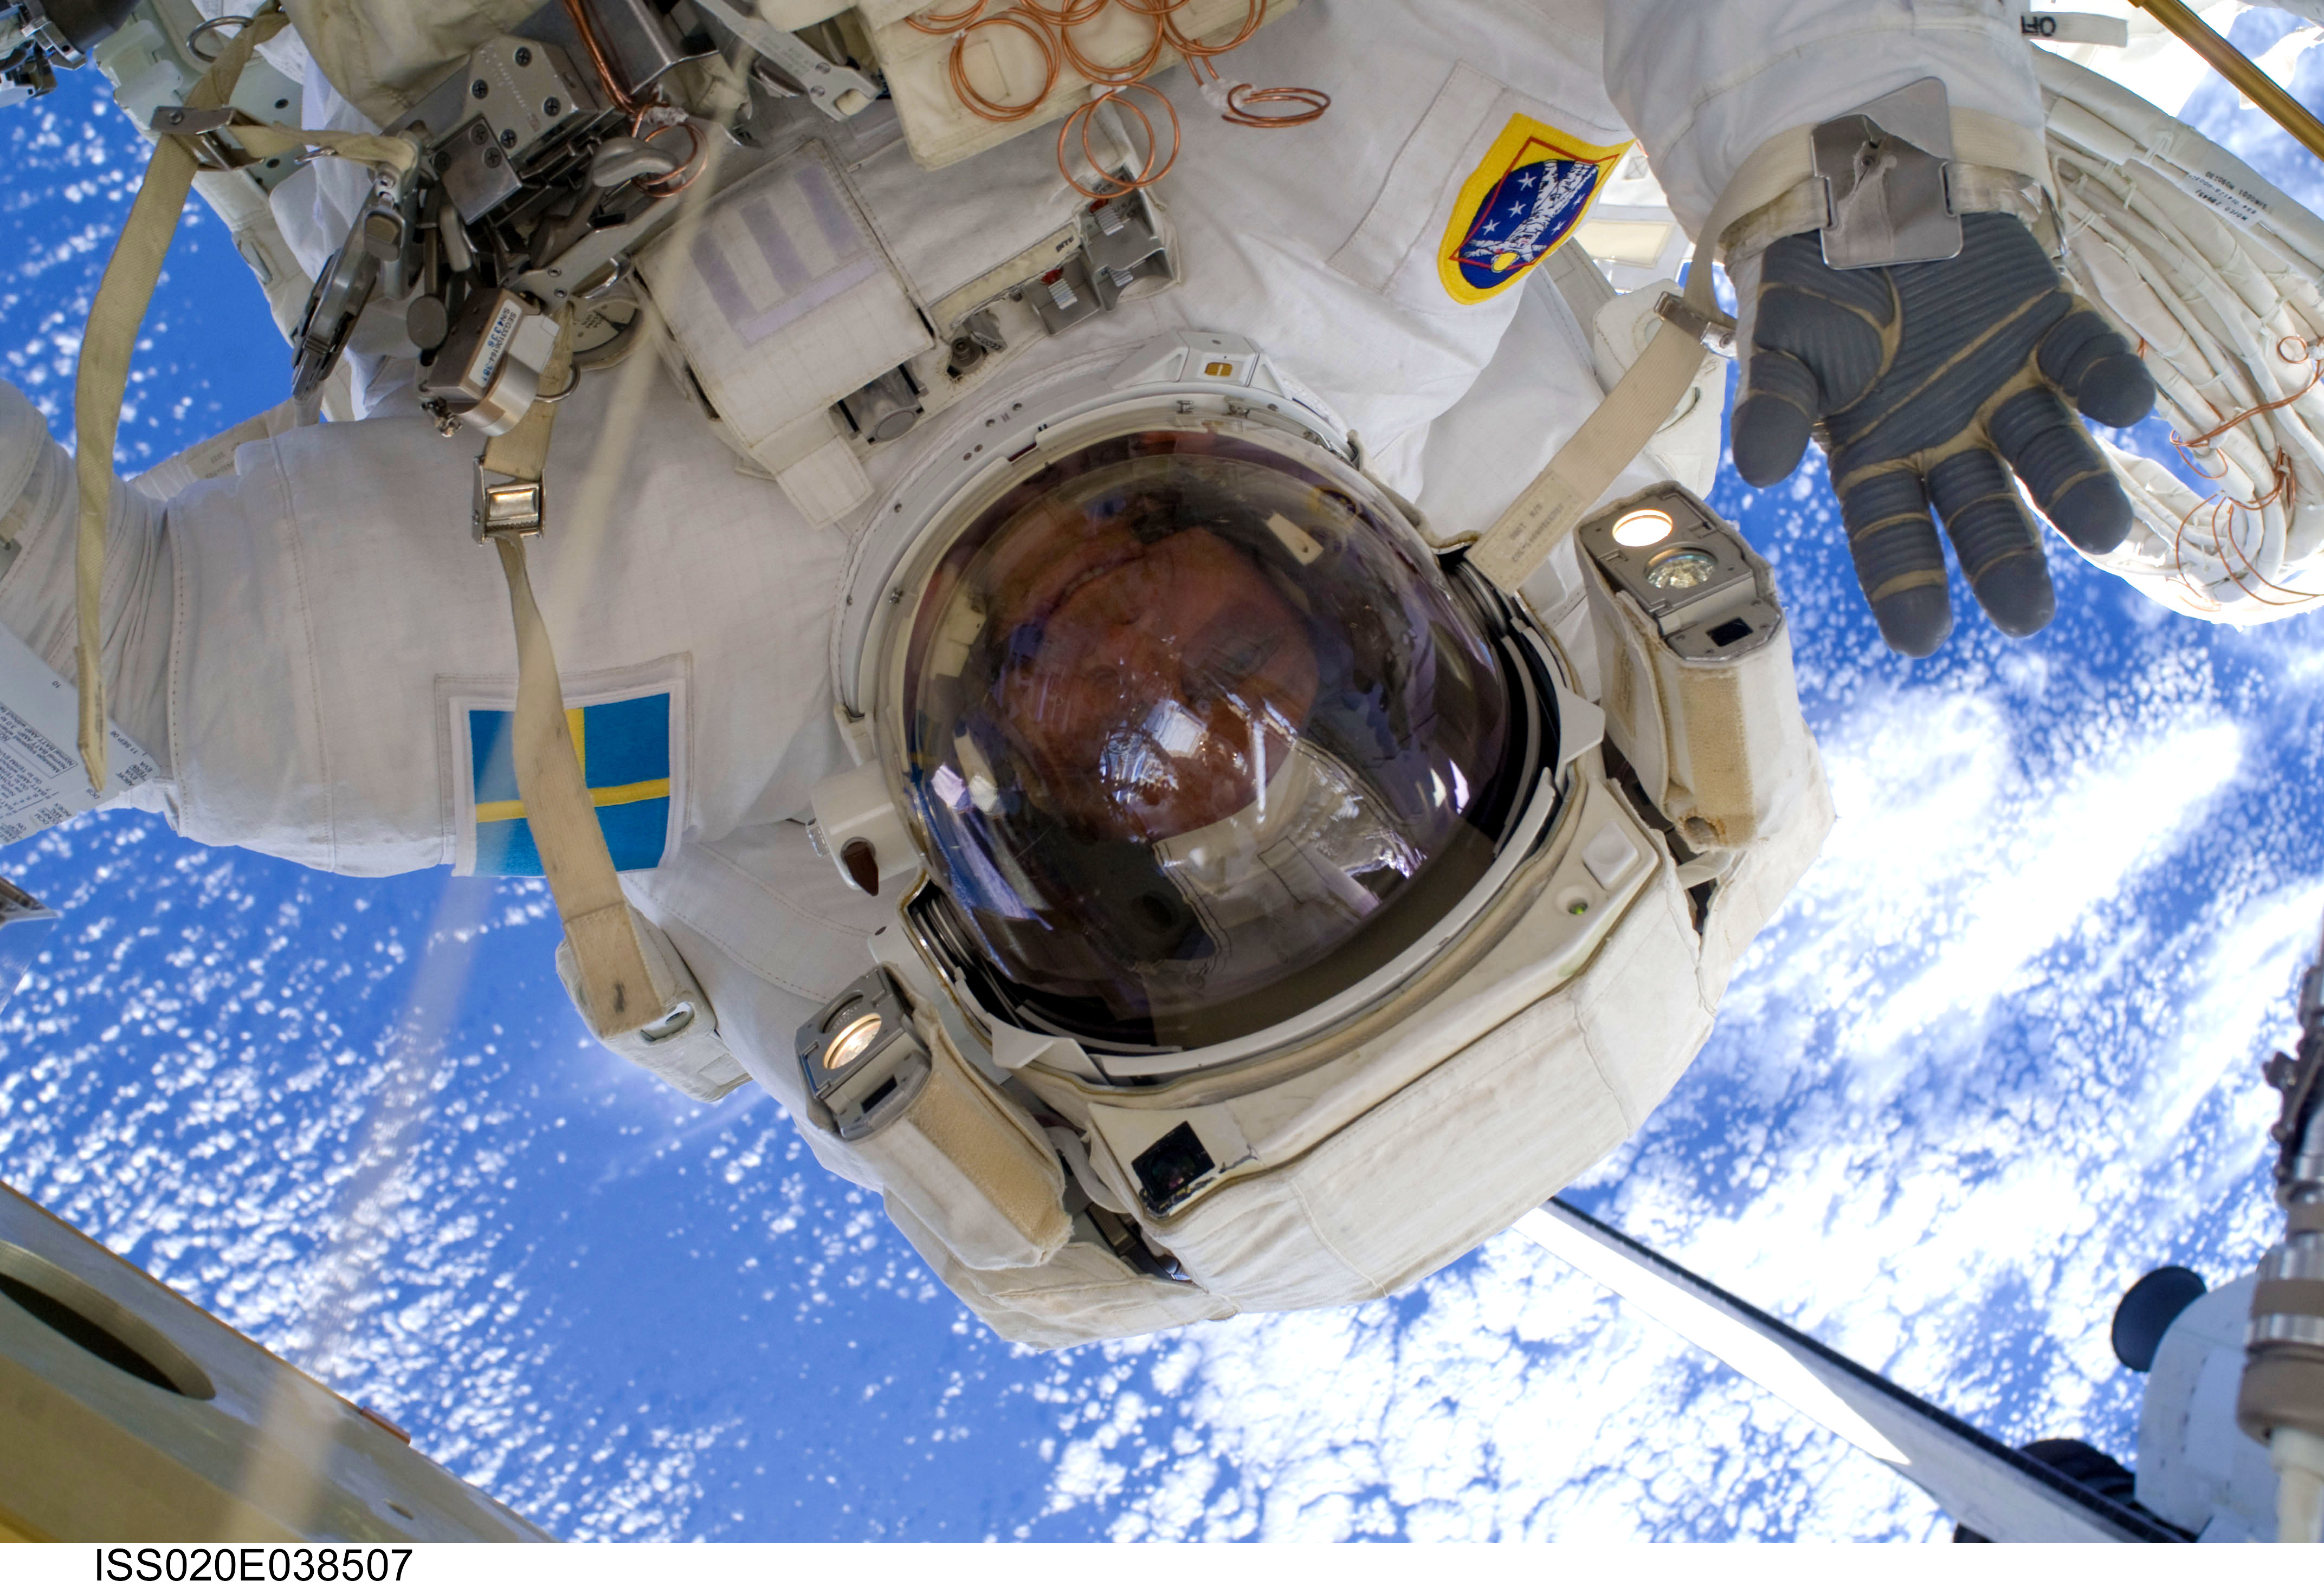 first esa astronaut in space - photo #25